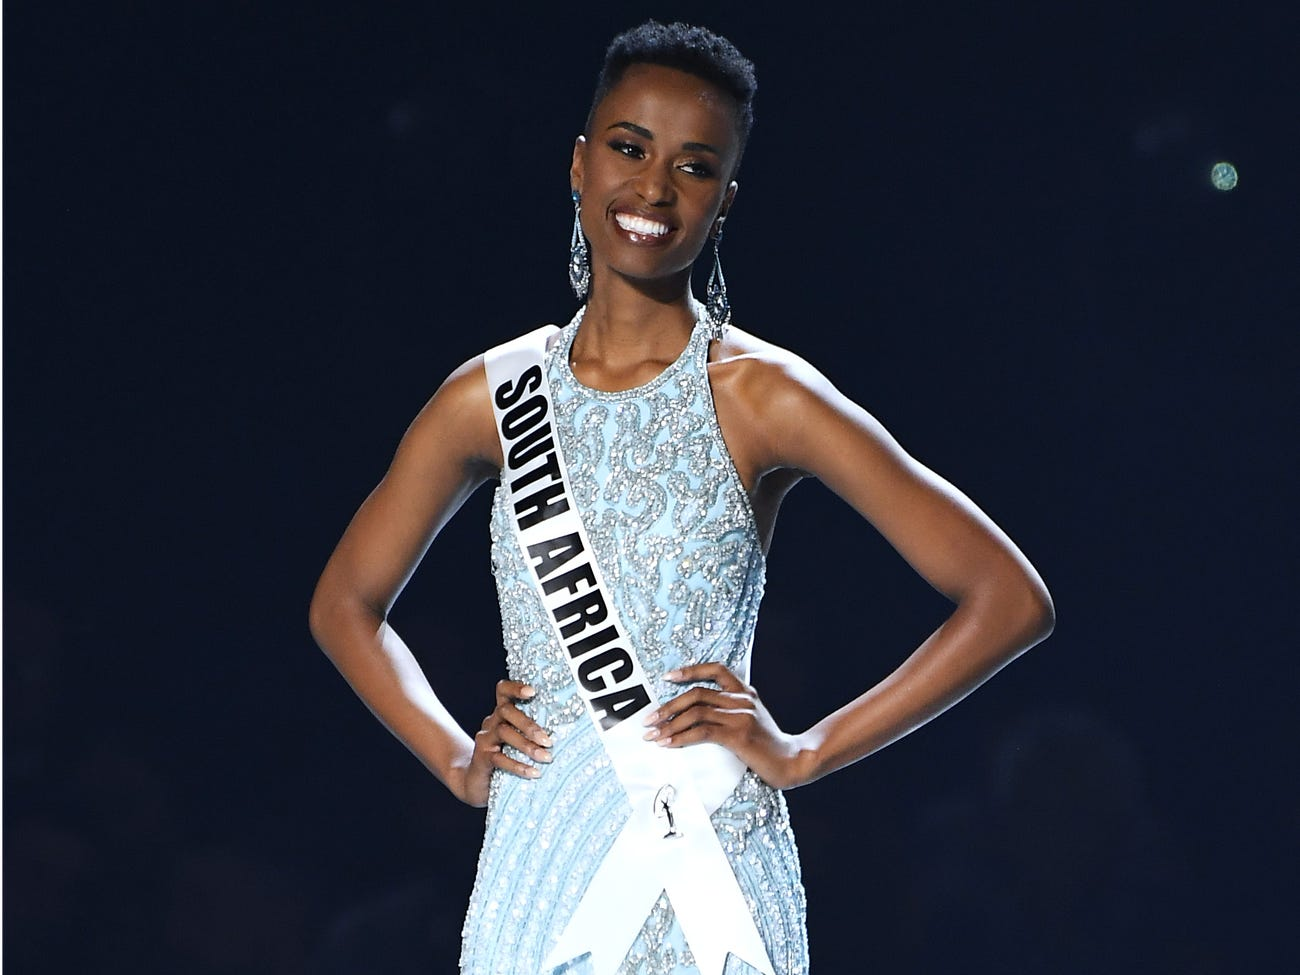 Miss South Africa at the 2019 Miss Universe pageant